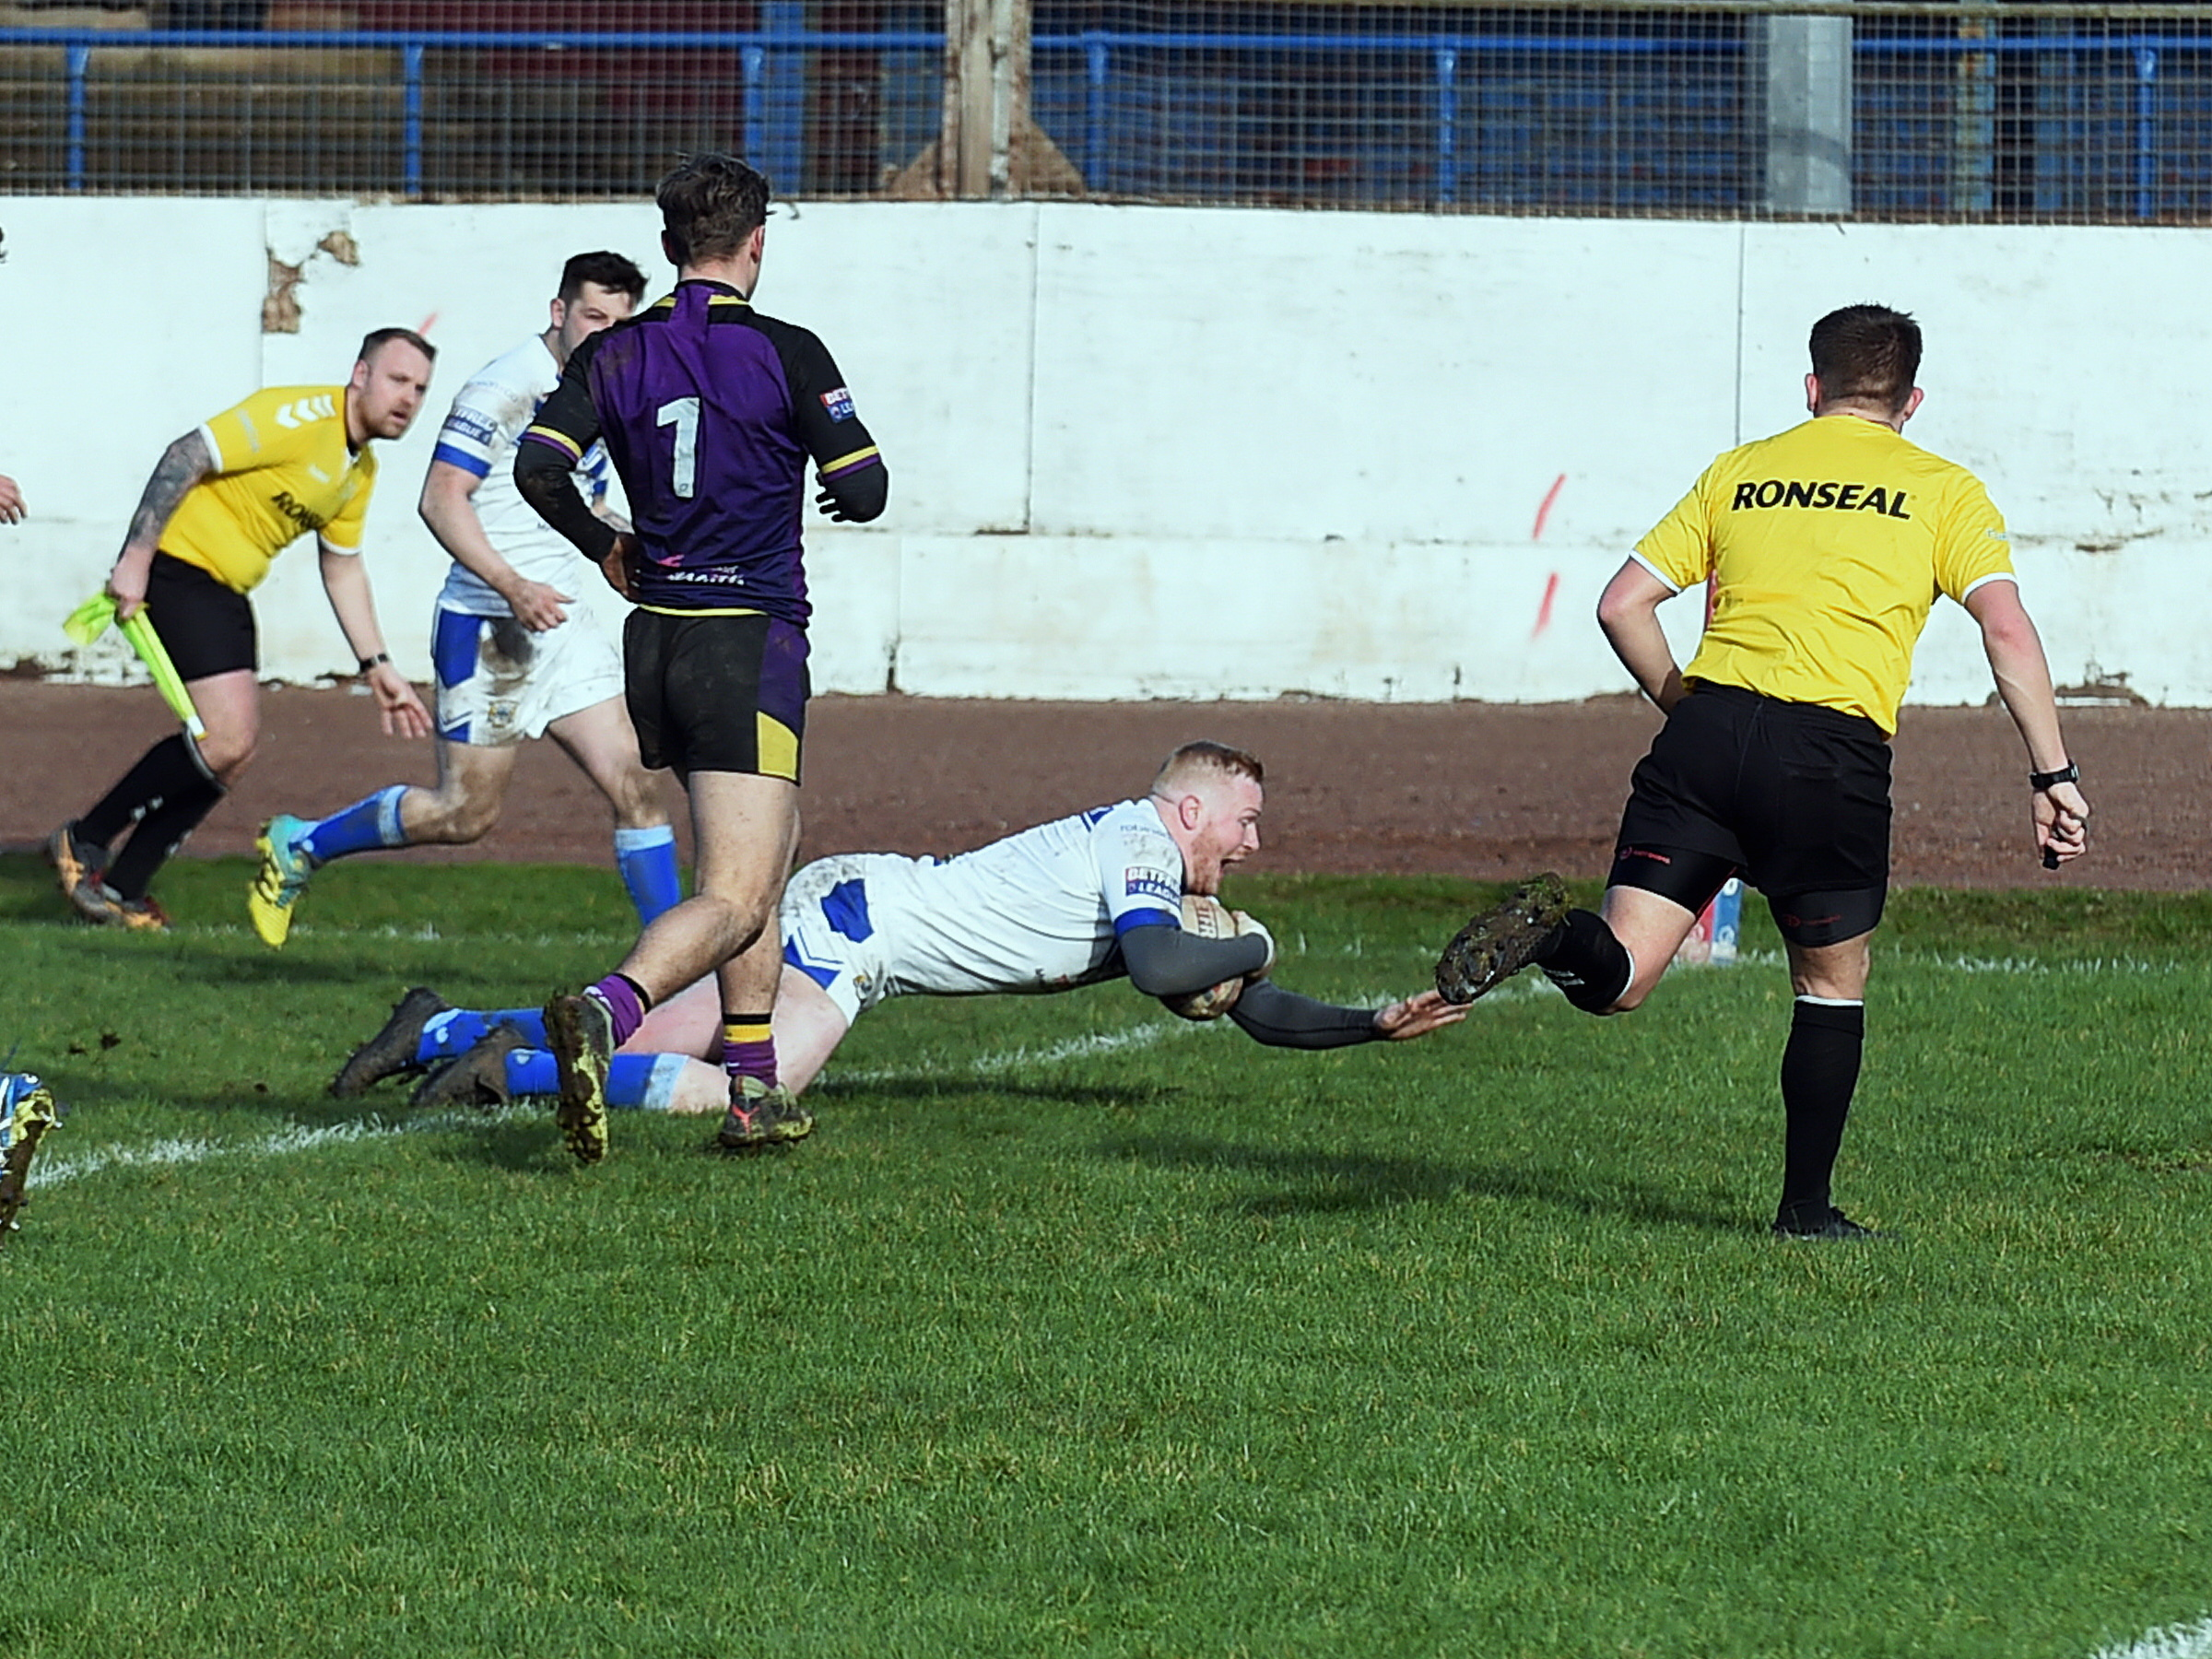 TRY-TIME: Perry Singleton dives over to score                             Mike McKenzie